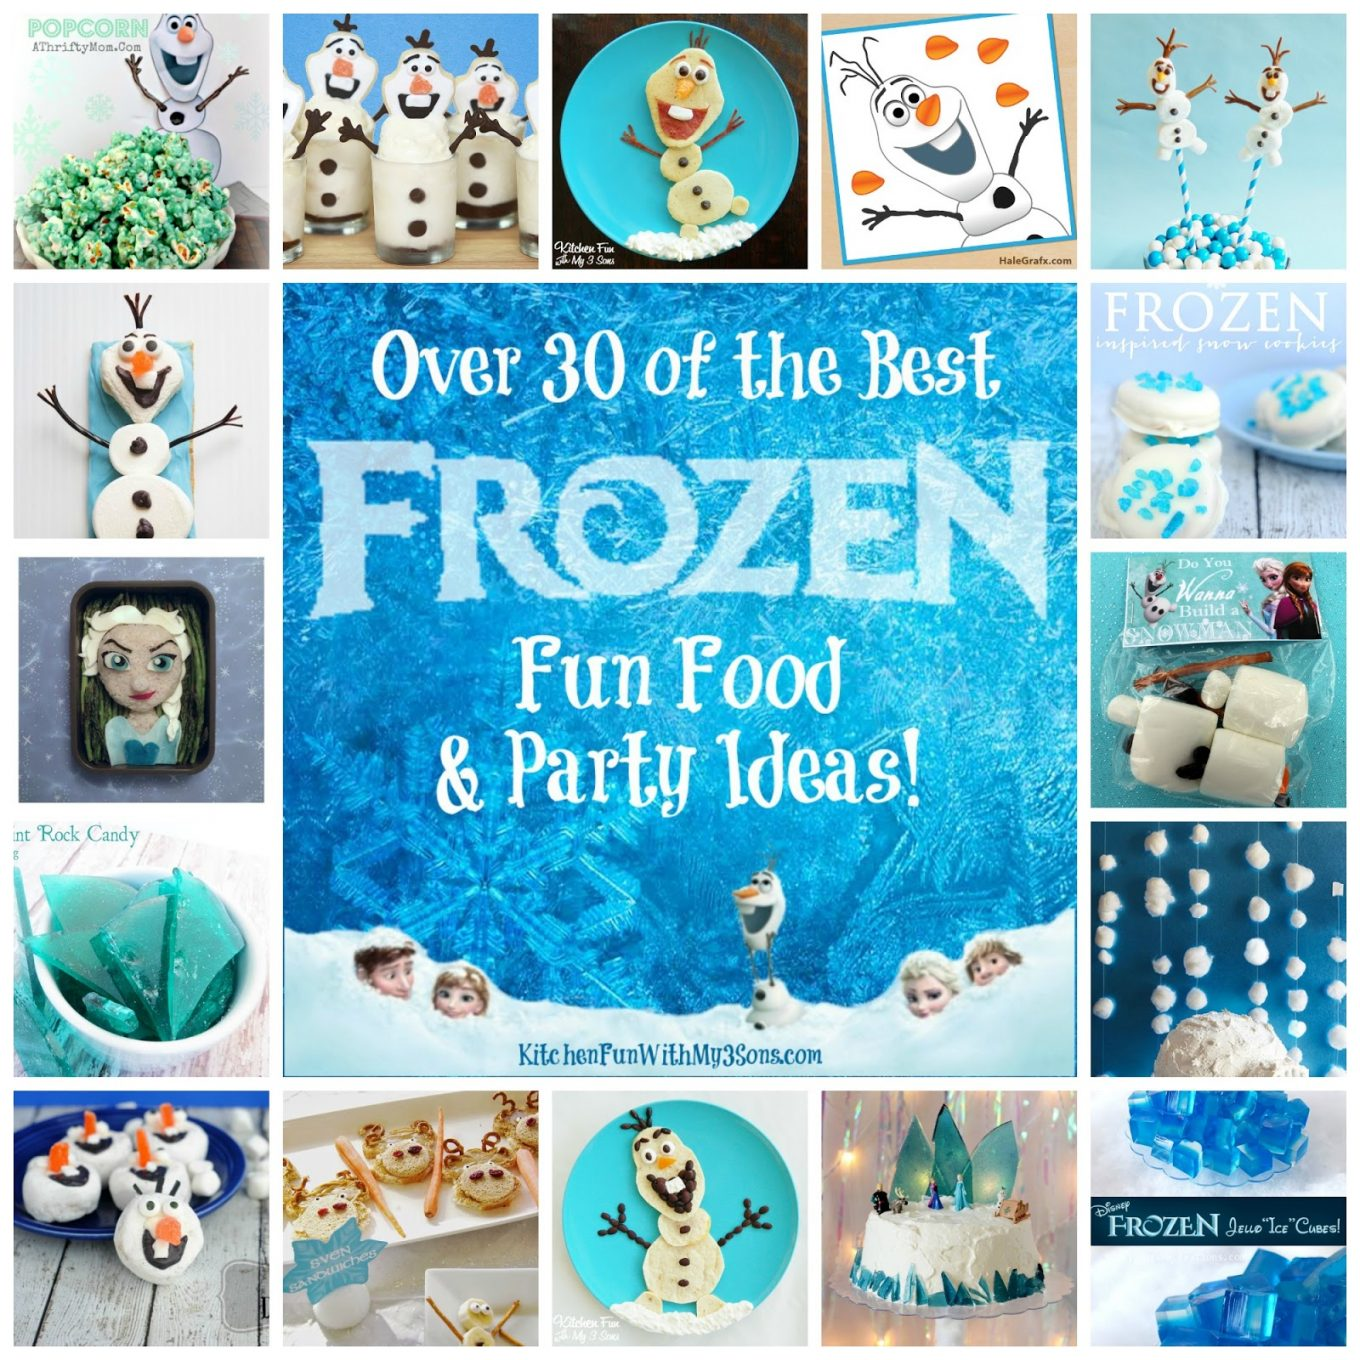 Kitchen Fun And Crafty Friday Link Party 167: Over 30 Of The BEST Frozen Party Ideas!